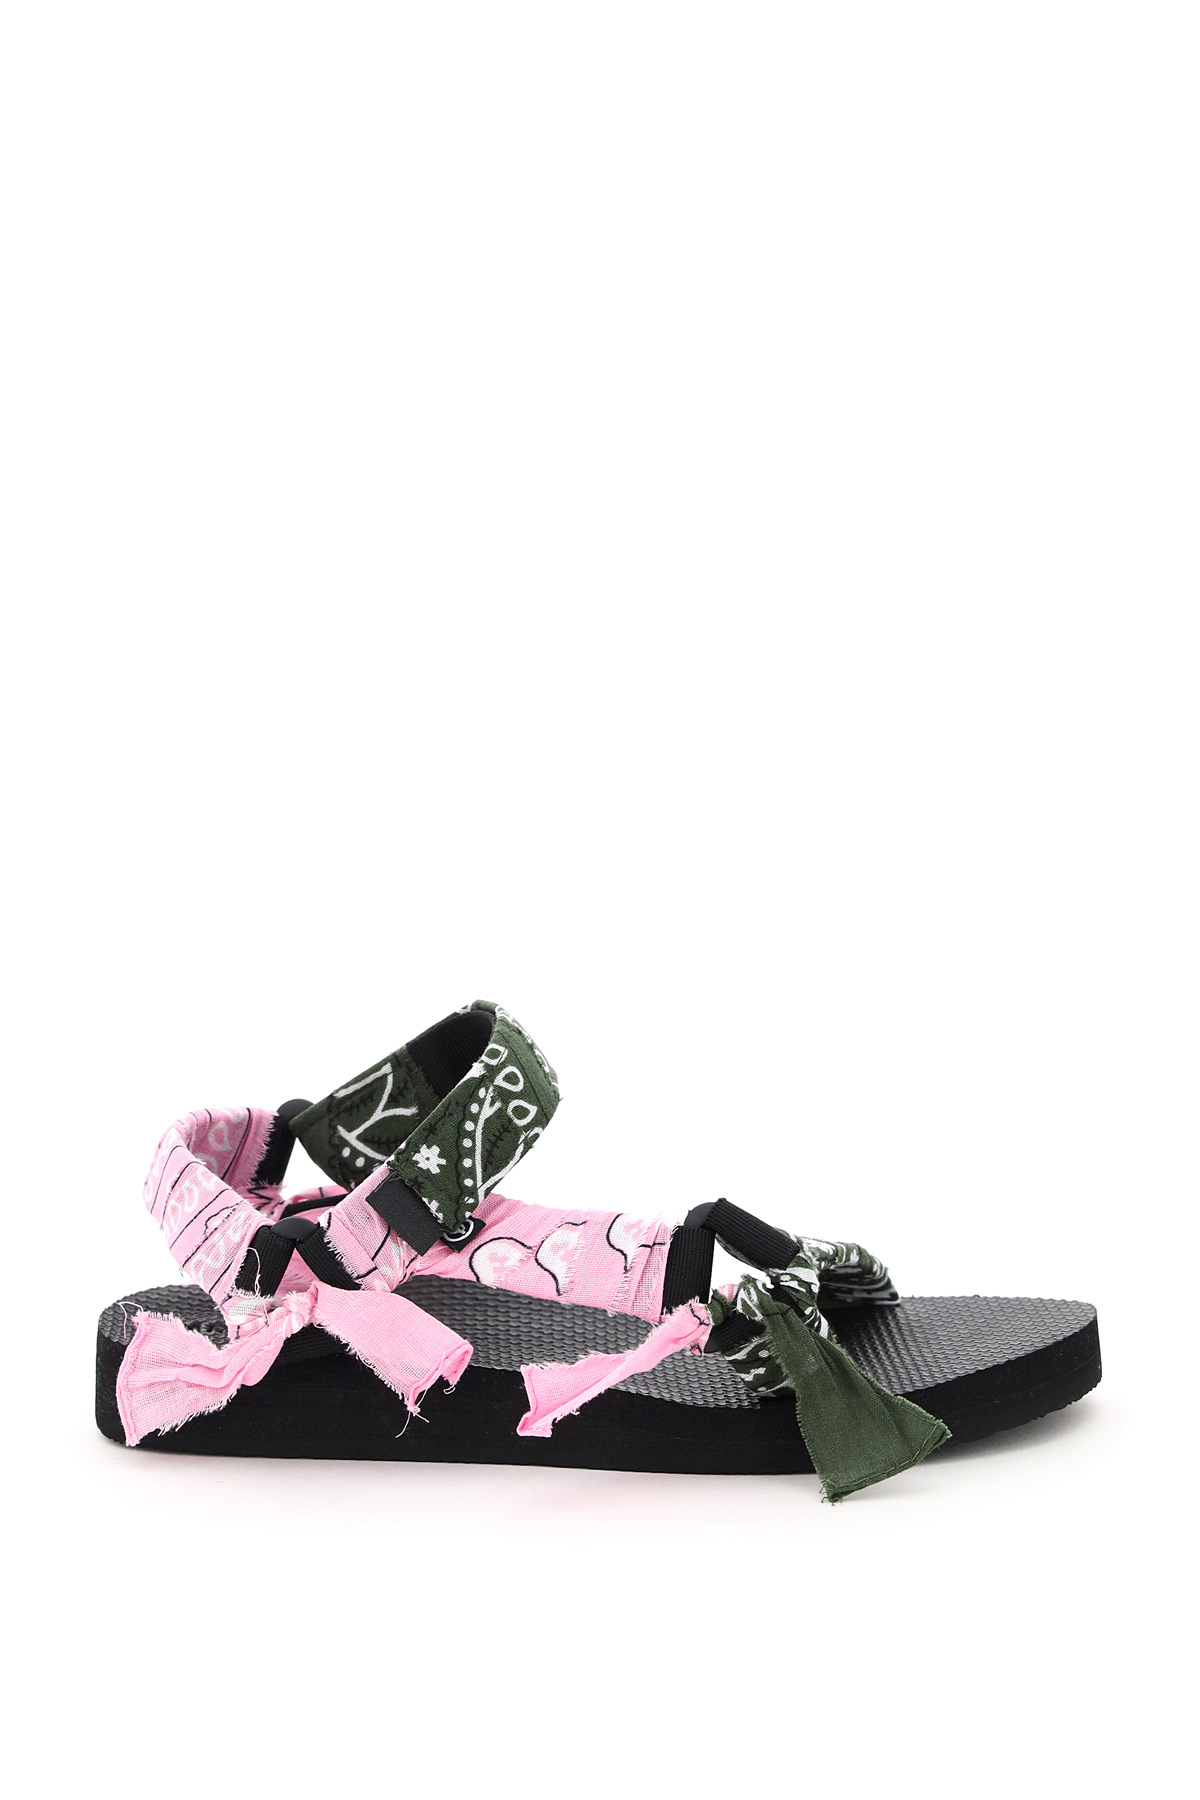 ARIZONA LOVE TREKKY BANDANA SANDALS 38 Khaki, Green, Pink Cotton